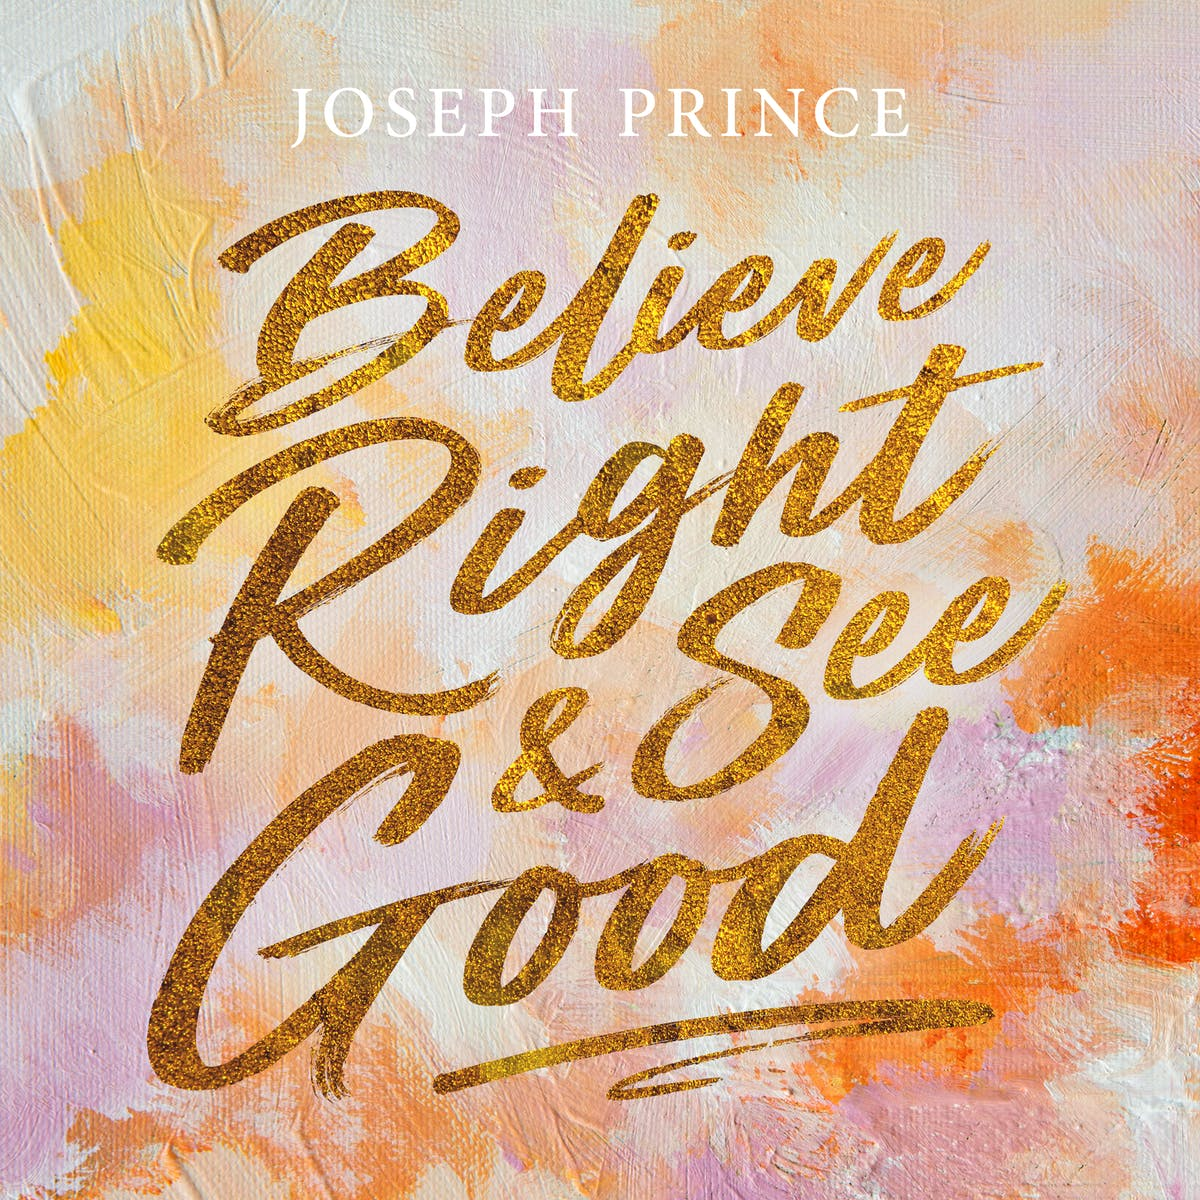 Believe Right And See Good | Official Joseph Prince Sermon